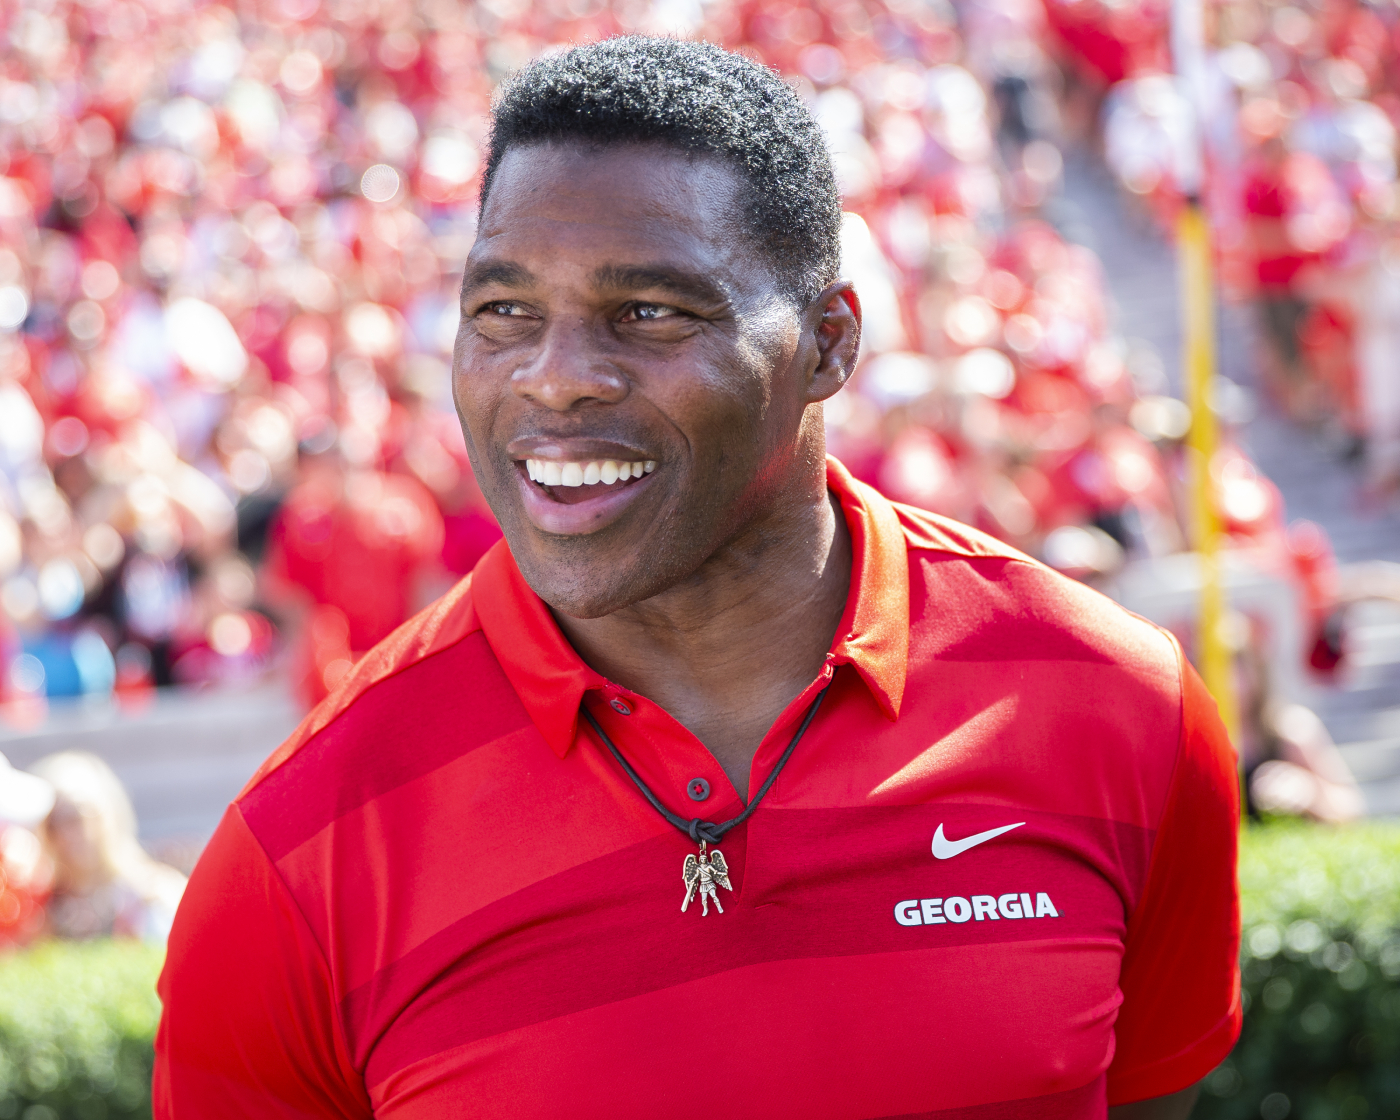 Herschel Walker's Football Career Led To Him Racking up a Massive Net Worth and Becoming Friends With Donald Trump